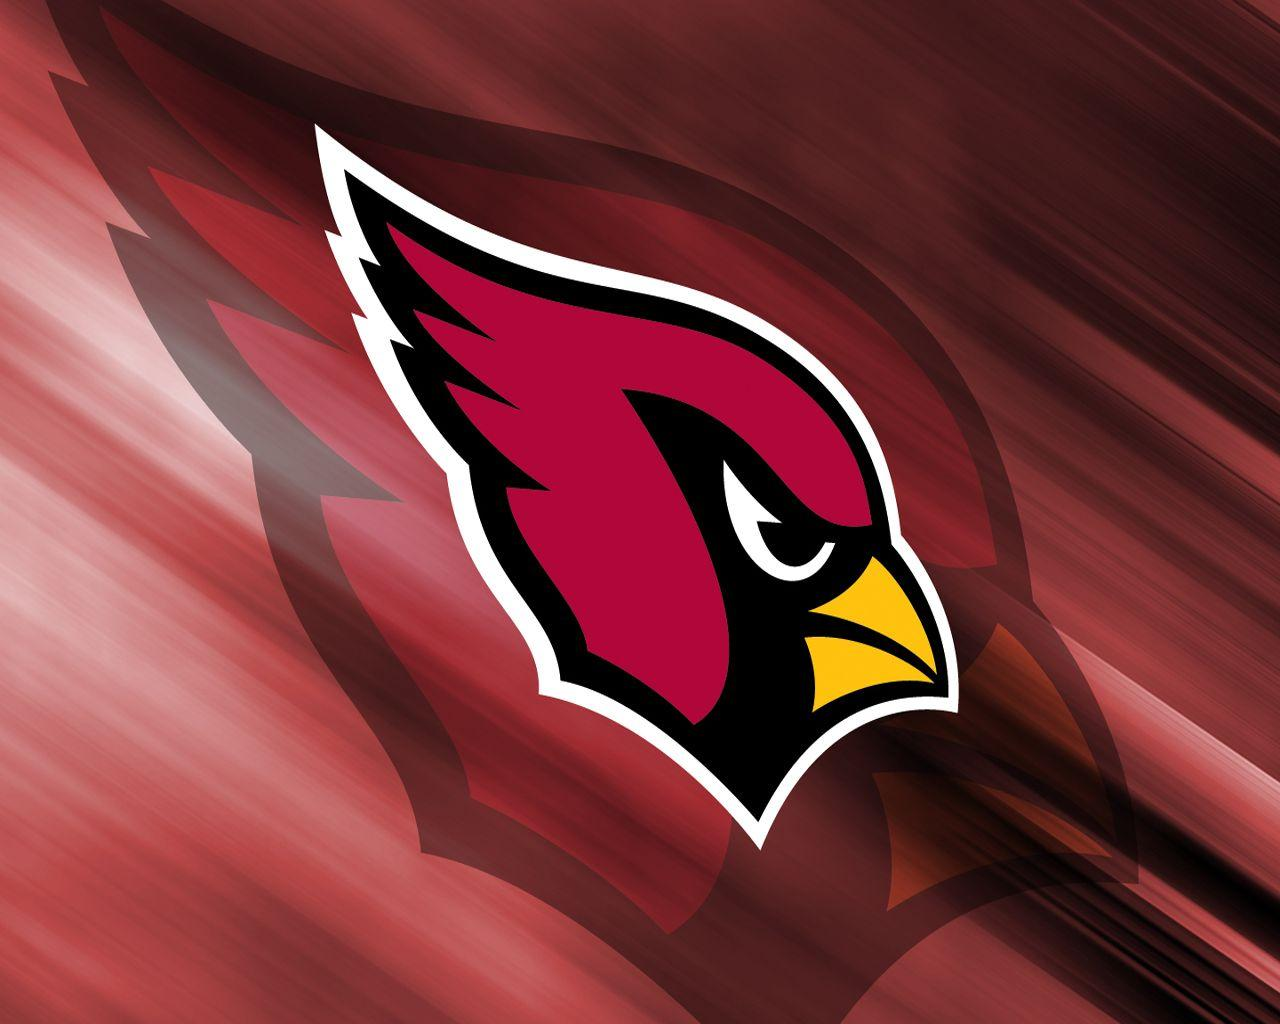 Louisville cardinals wallpapers wallpaper cave - Arizona cardinals screensaver free ...